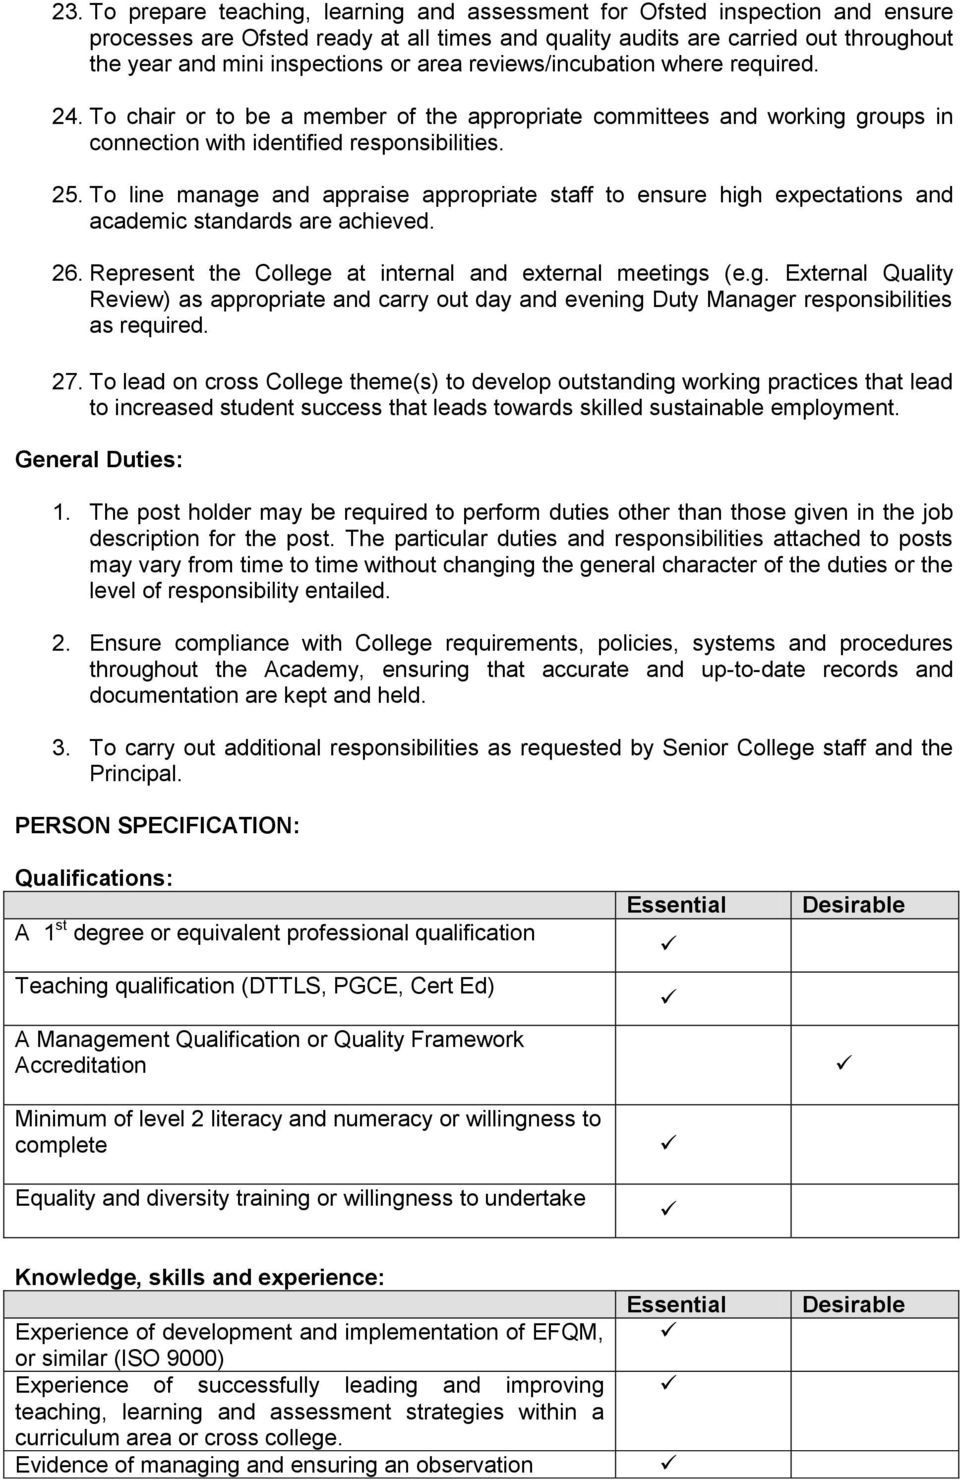 To line manage and appraise appropriate staff to ensure high expectations and academic standards are achieved. 26. Represent the College at internal and external meetings (e.g. External Quality Review) as appropriate and carry out day and evening Duty Manager responsibilities as required.